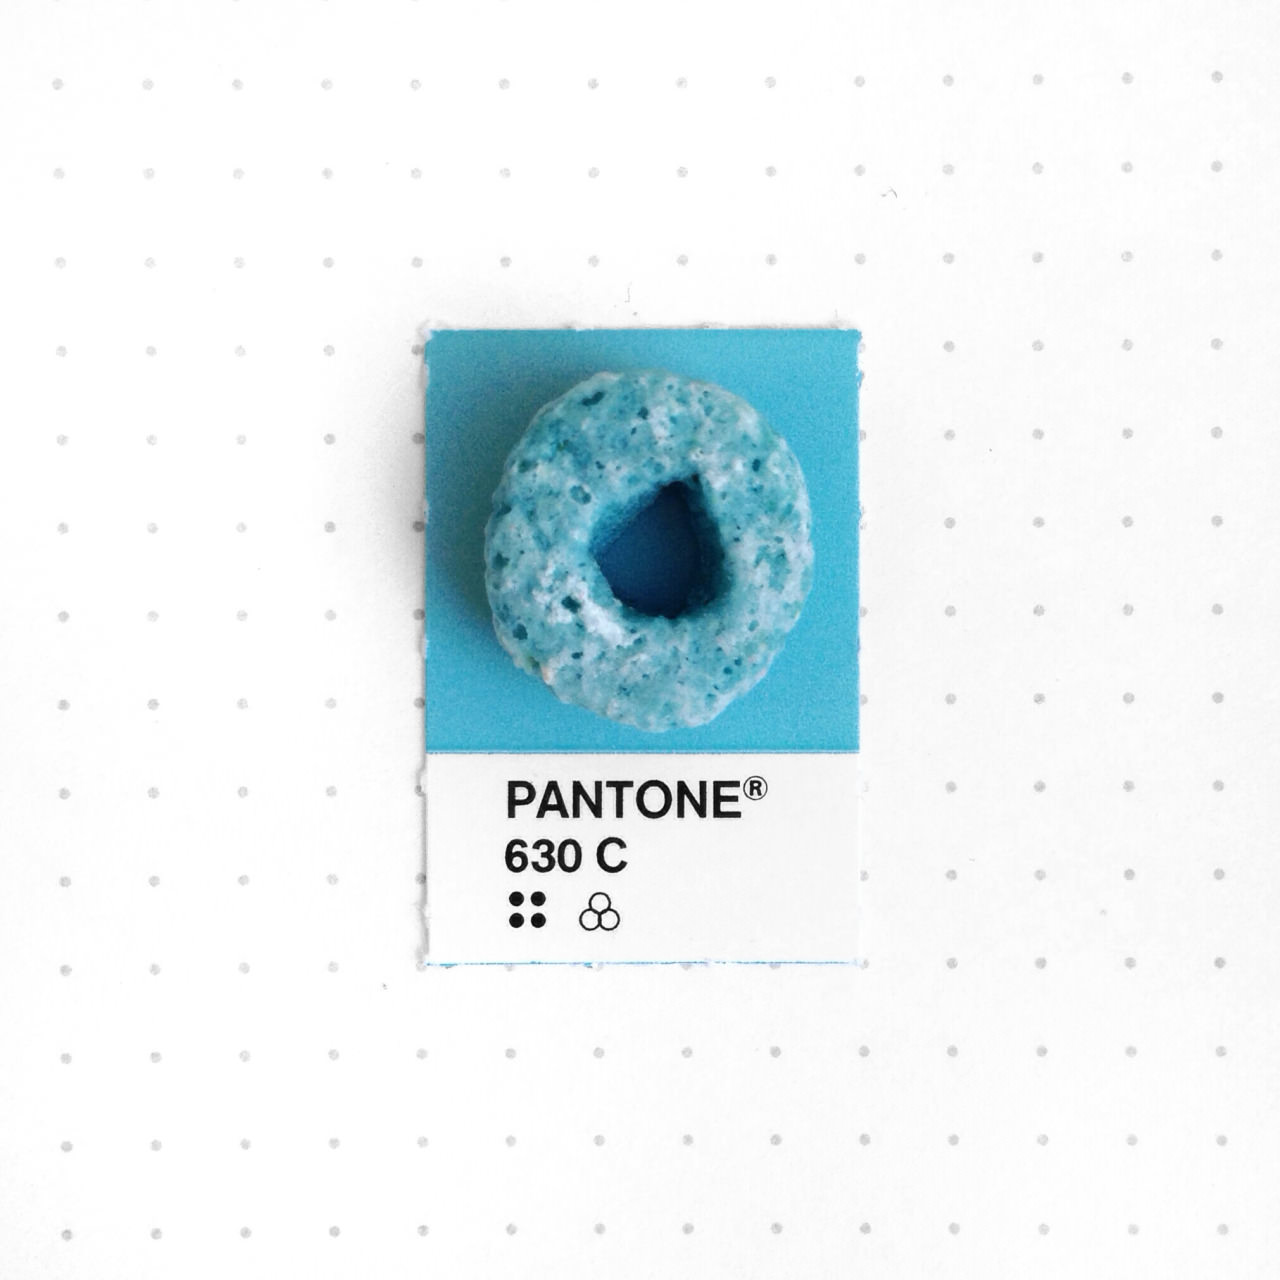 bridging-life-and-design-in-15-pantone-color-matches-03